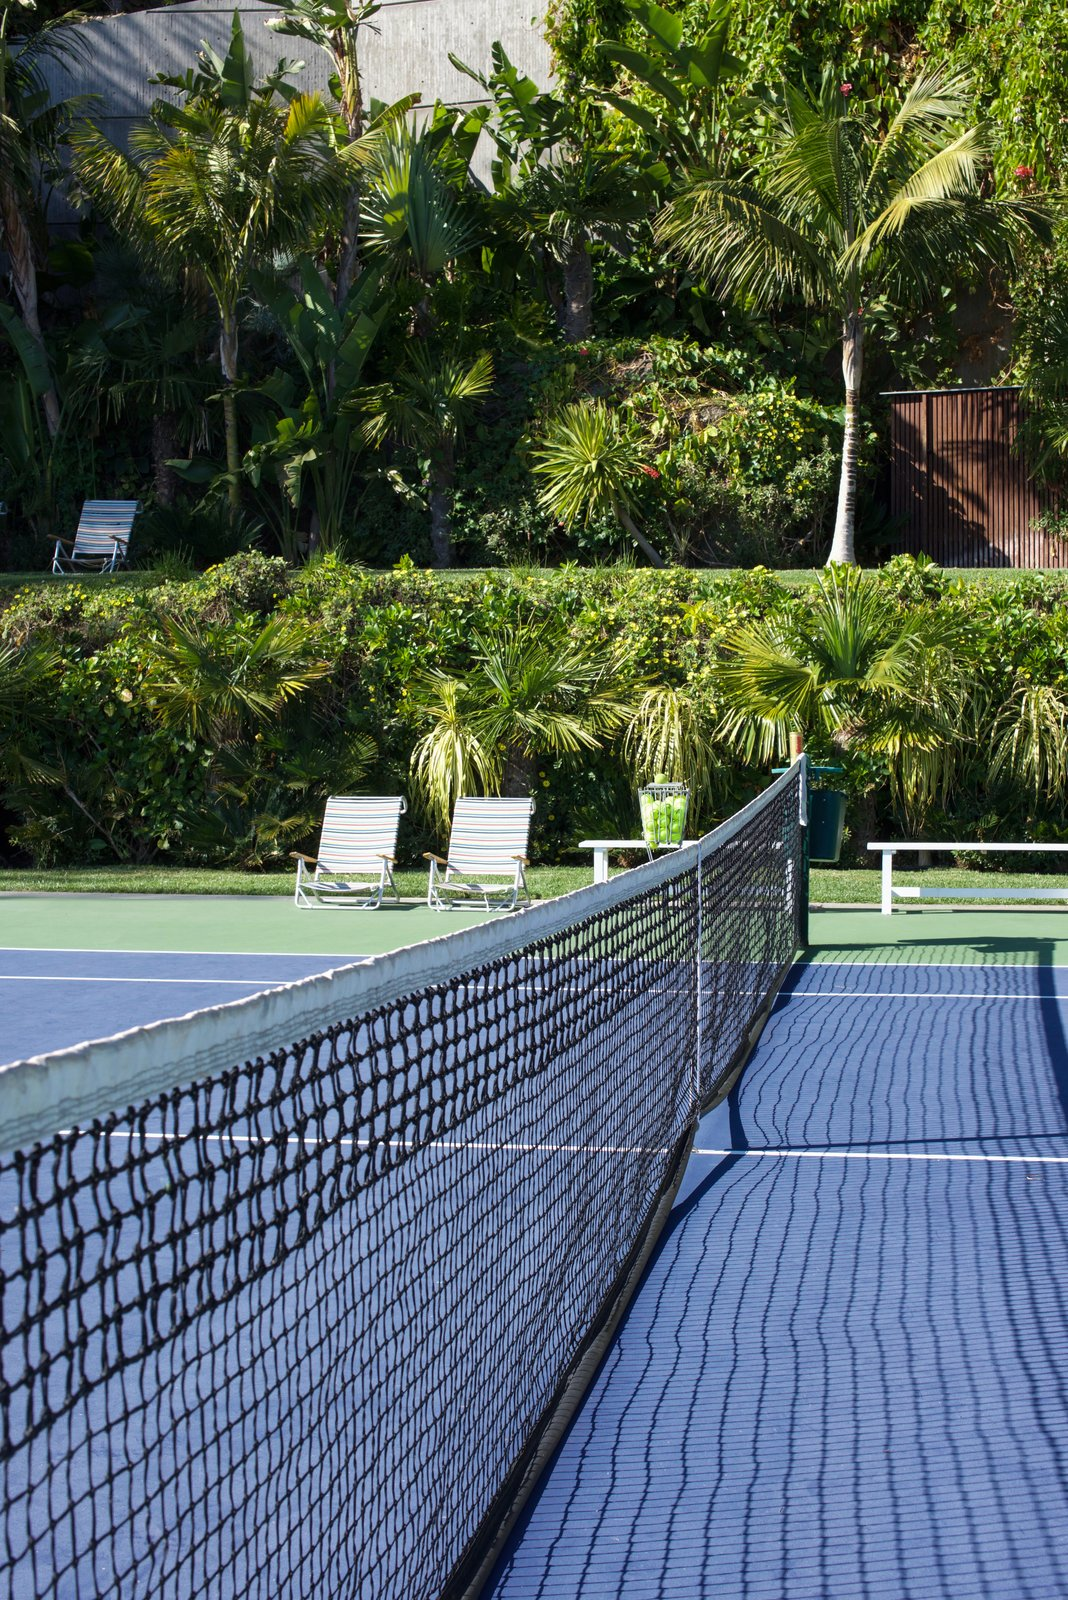 Goldstein regularly uses the tennis court, which has an upper level for visitors to watch and relax.  Behind the Scenes at John Lautner's Sheats-Goldstein Residence